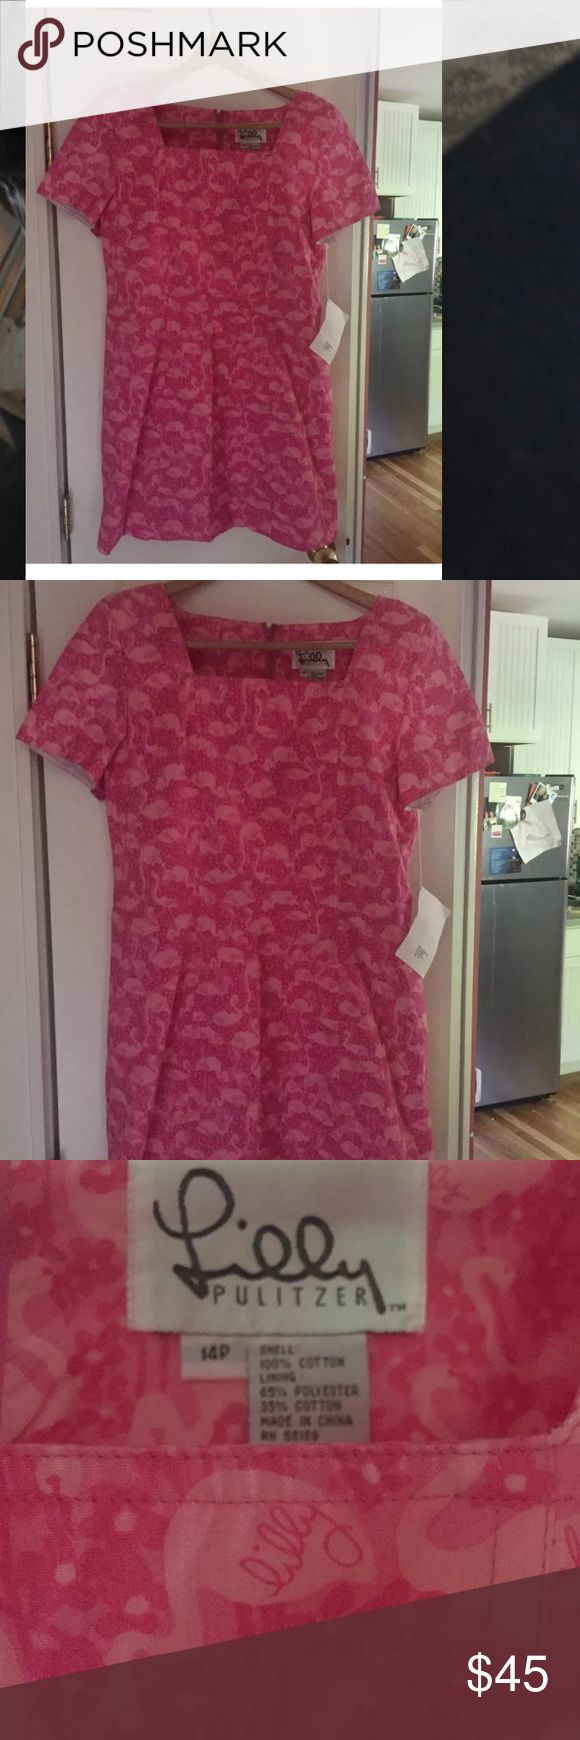 Lilly Pulitzer size 14 petite pink dress. Size 14p pink dress. The outer layer is made of 100 % cotton and the lining is 65% polyester and 35% cotton. It has flowers and flamingoes on it Lilly Pulitzer Dresses Mini